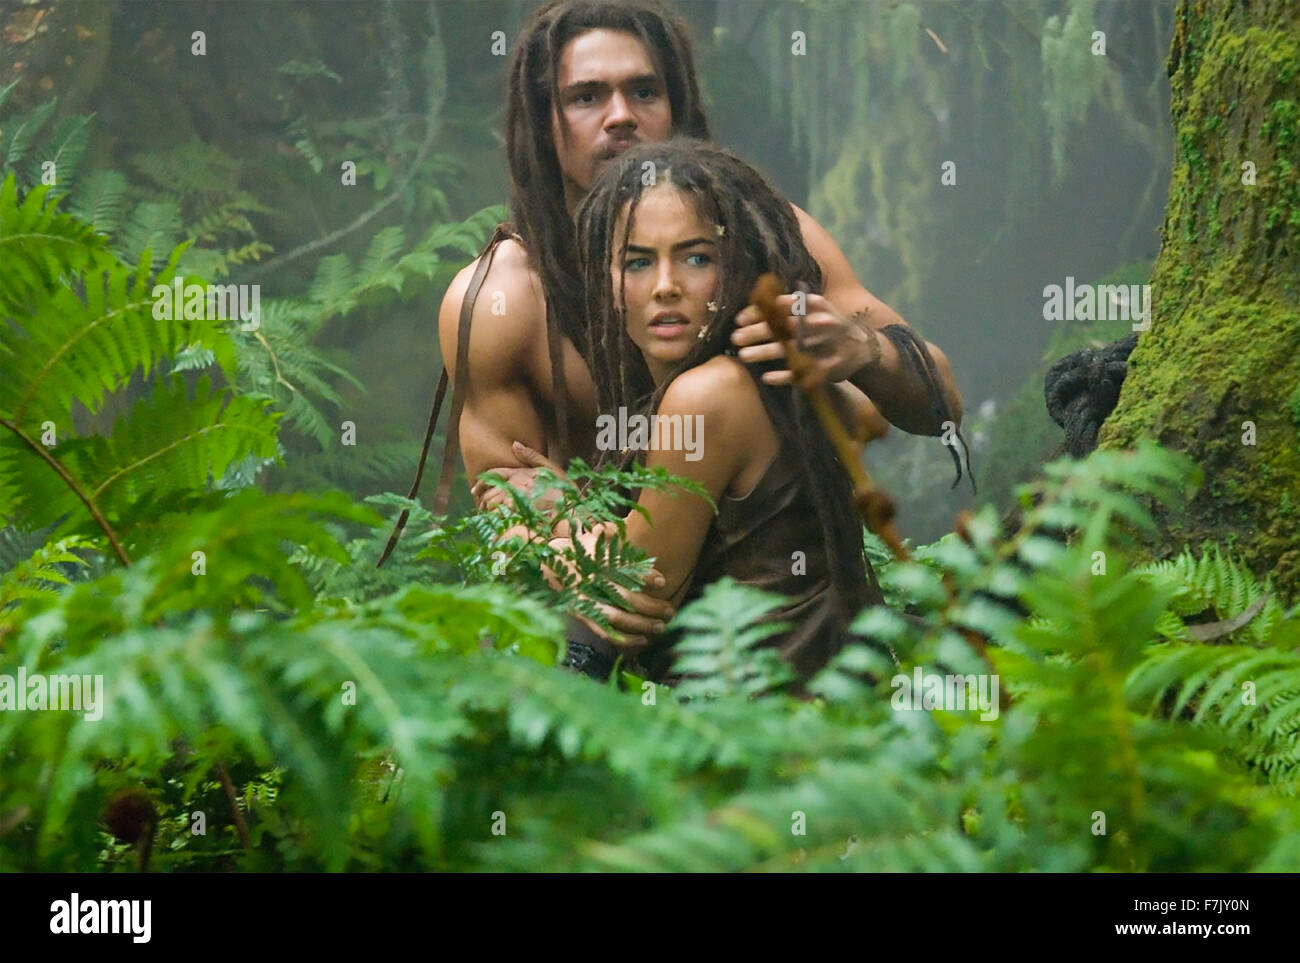 10,000 BC 2008 Warner Bros film with Camilla Belle and Steven Strait - Stock Image